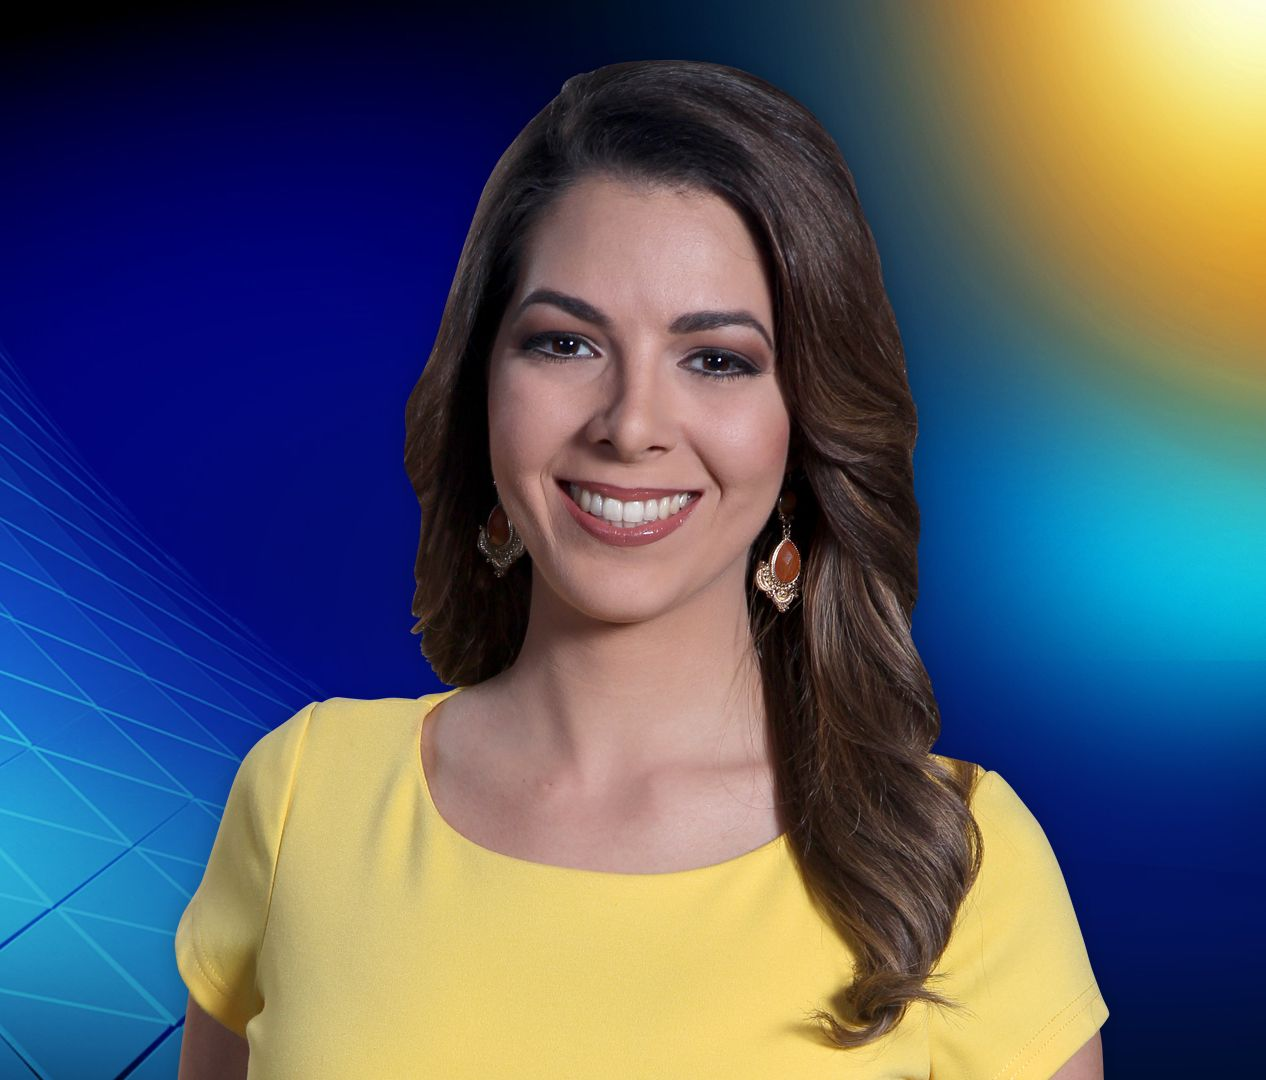 Wsvn weather girl leaving